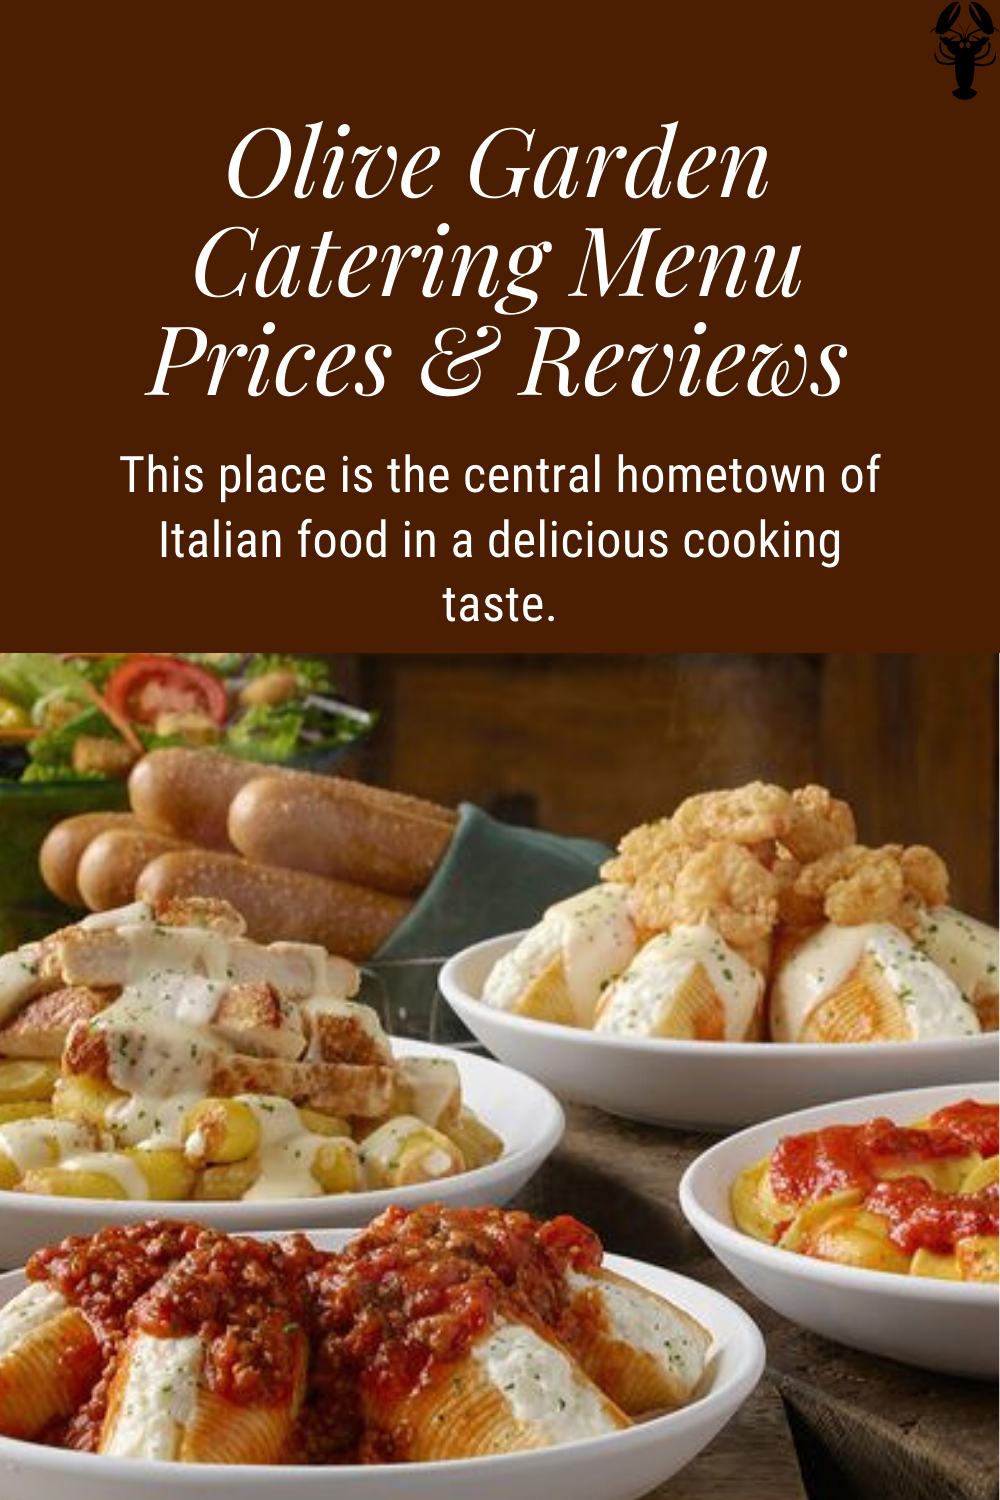 Olive Garden Catering Menu Prices Reviews In 2020 Italian Recipes Olive Garden Catering Catering Menu